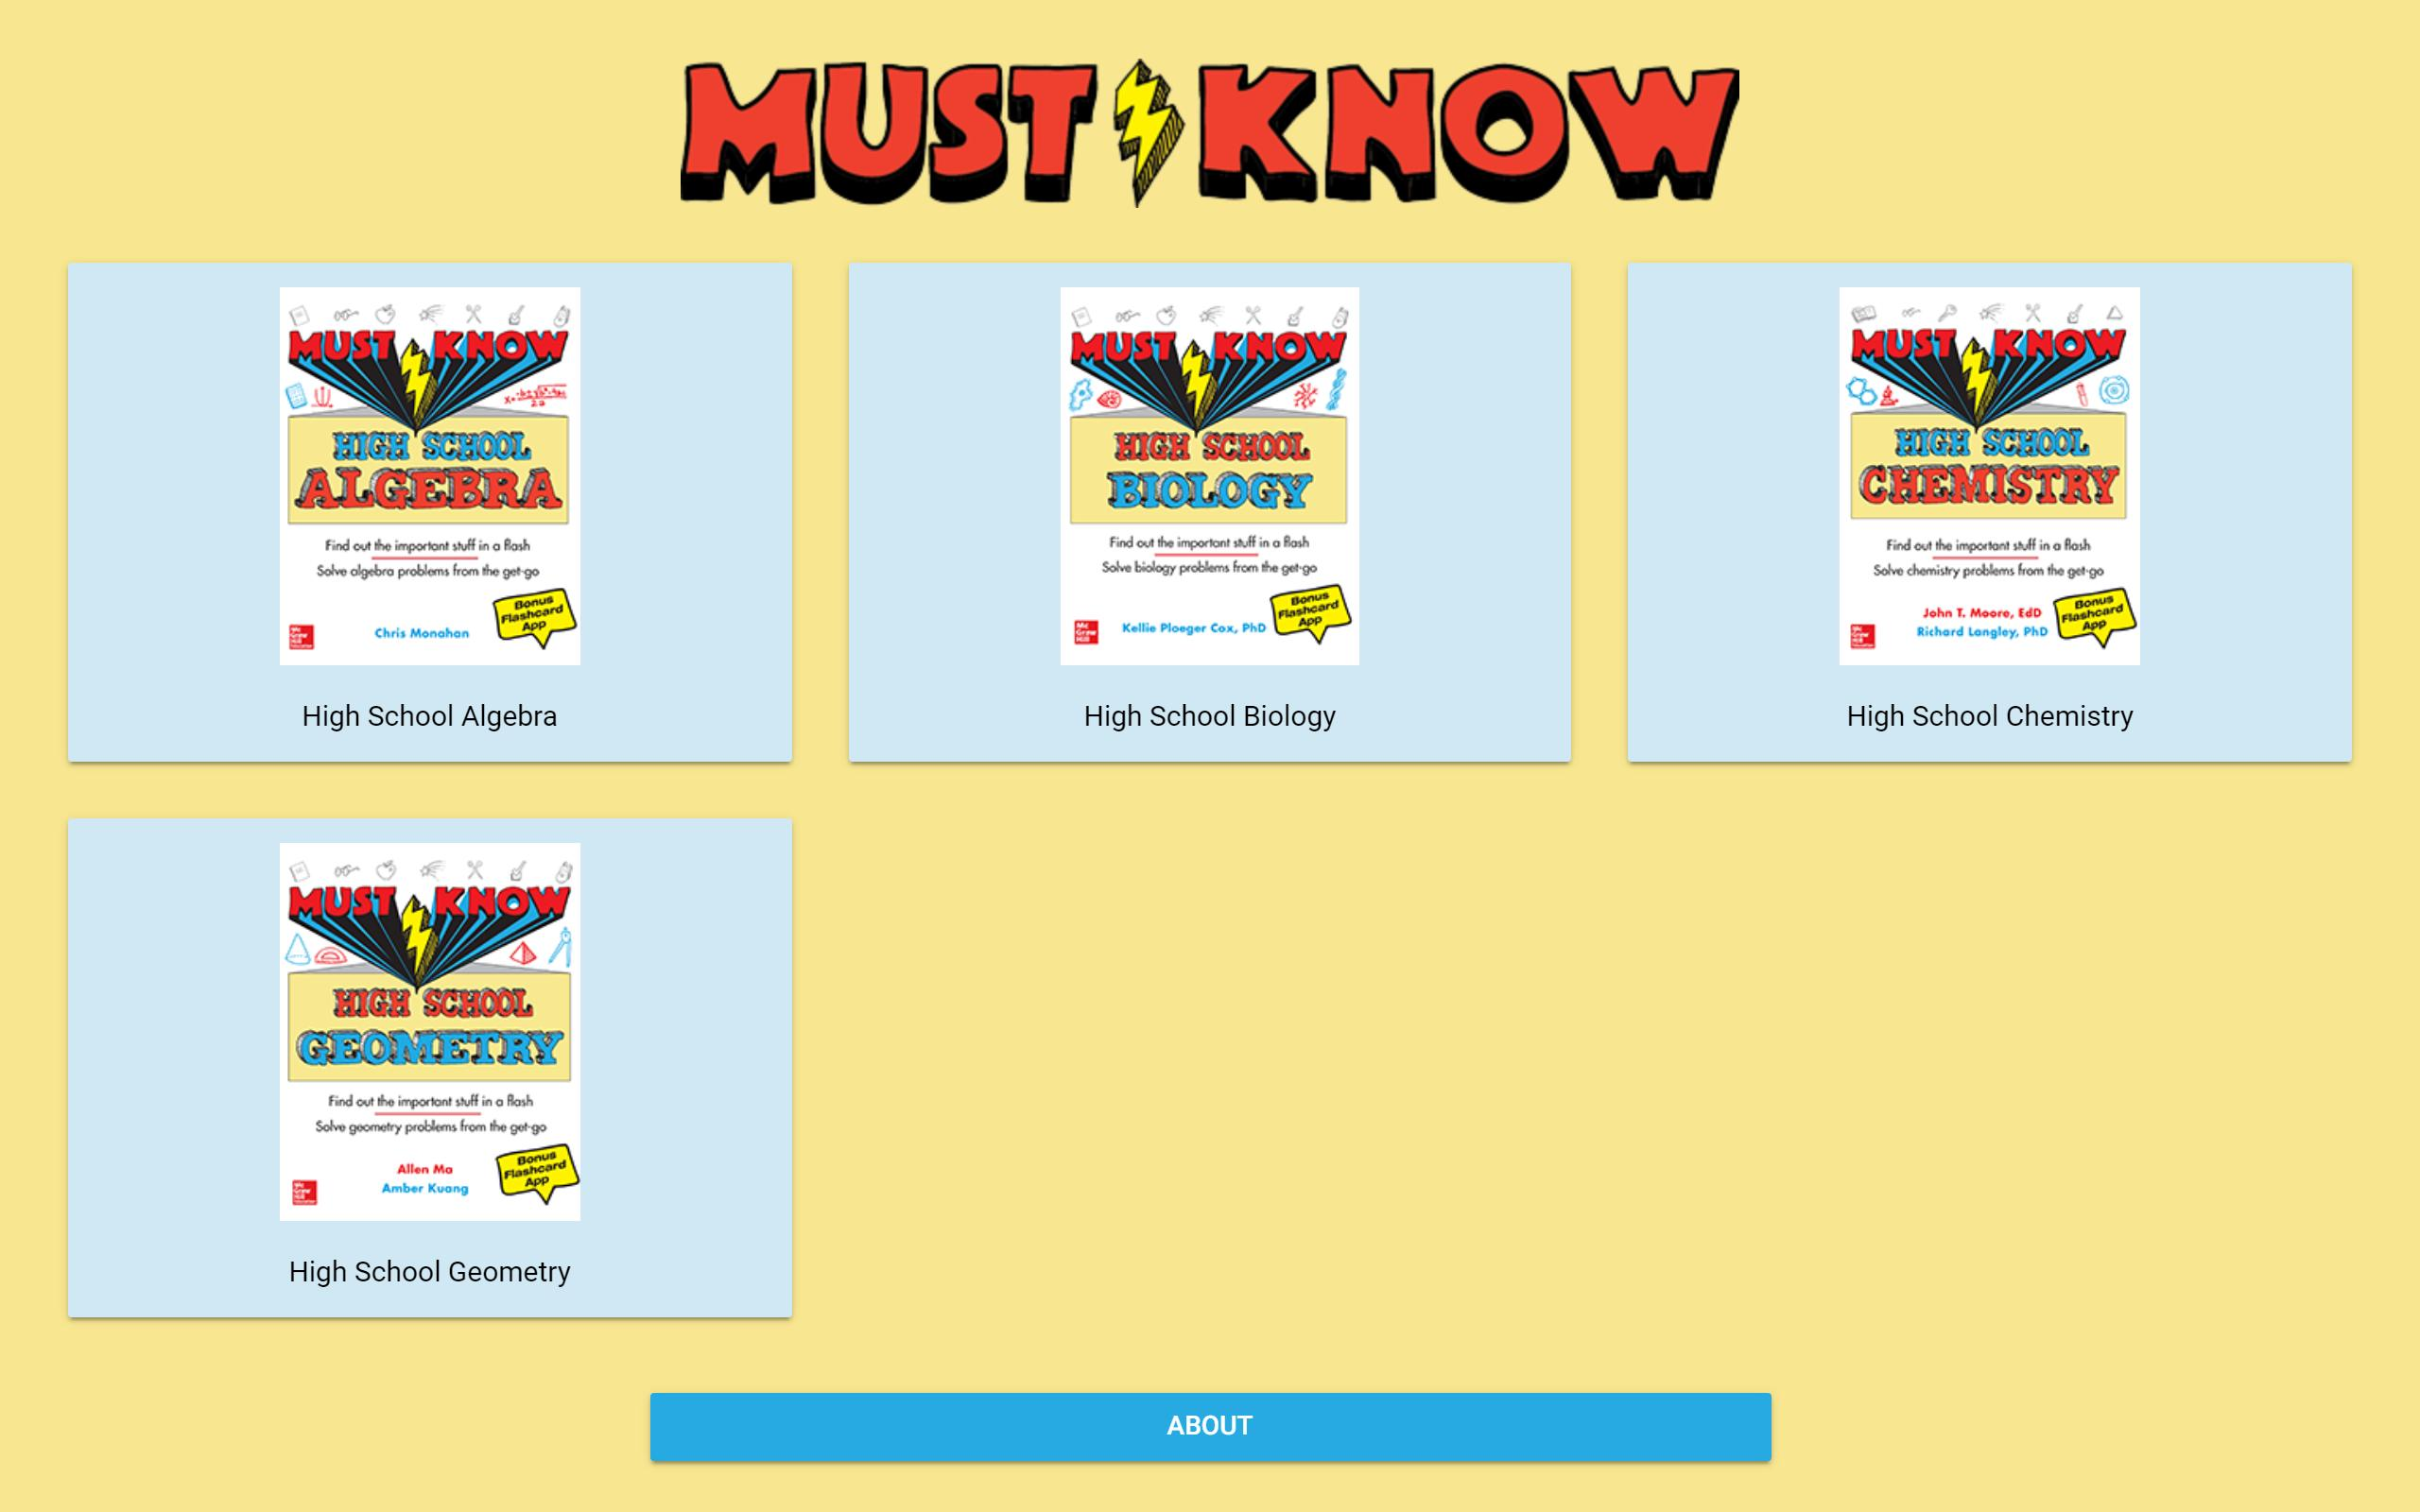 Must Know poster